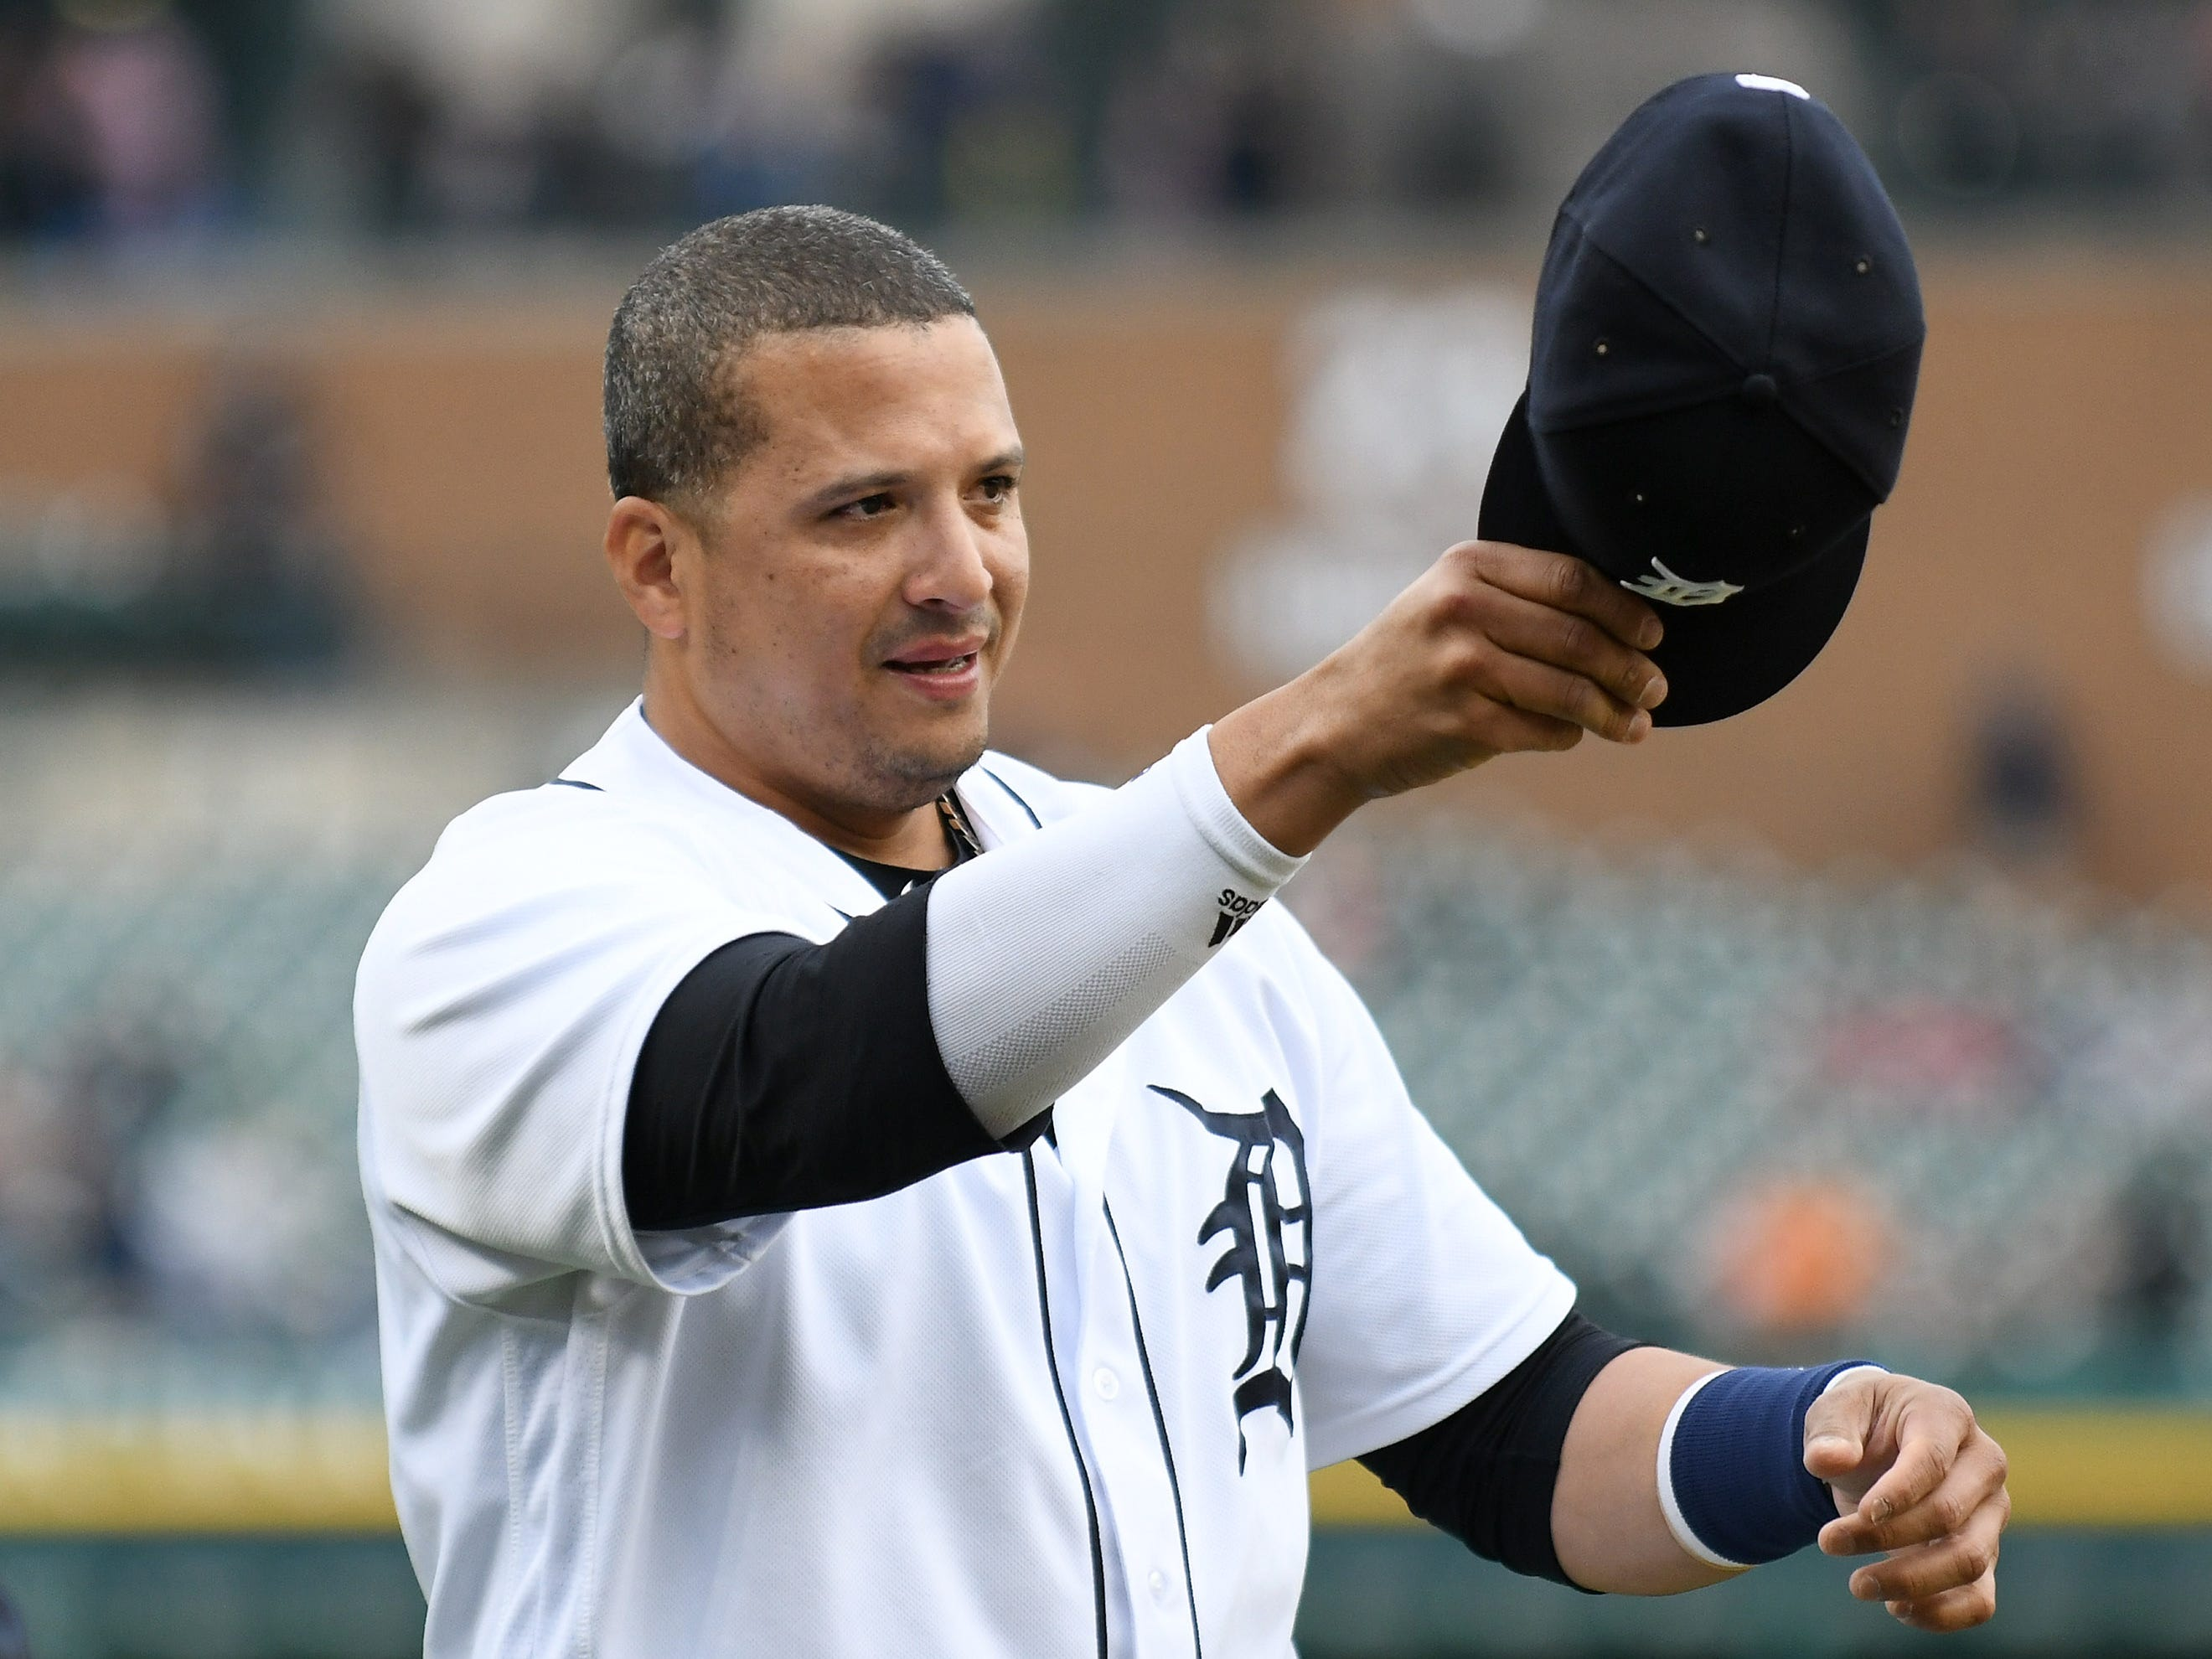 DESIGNATED HITTER: Victor Martinez (.251/.297/.353): One of the highlights of the season was Martinez's final ride. He got stirring and richly-deserved tributes in Cleveland, Minnesota and of course, a tear-filled day in Detroit on Sept. 22 when the final at-bat of his 16-year career was, ironically, an infield single into the shift. His behind-the-scenes leadership and mentoring was as valuable as anything he's done on the field the last two years, for sure. He leaves the game with 2,153 hits, a .295 career average, 423 doubles, 246 home runs and 1,178 RBIs. He goes into the books as the most productive switch-hitter in Tigers history.  Mid-term grade: C Second-half grade: B Final grade: C-plus